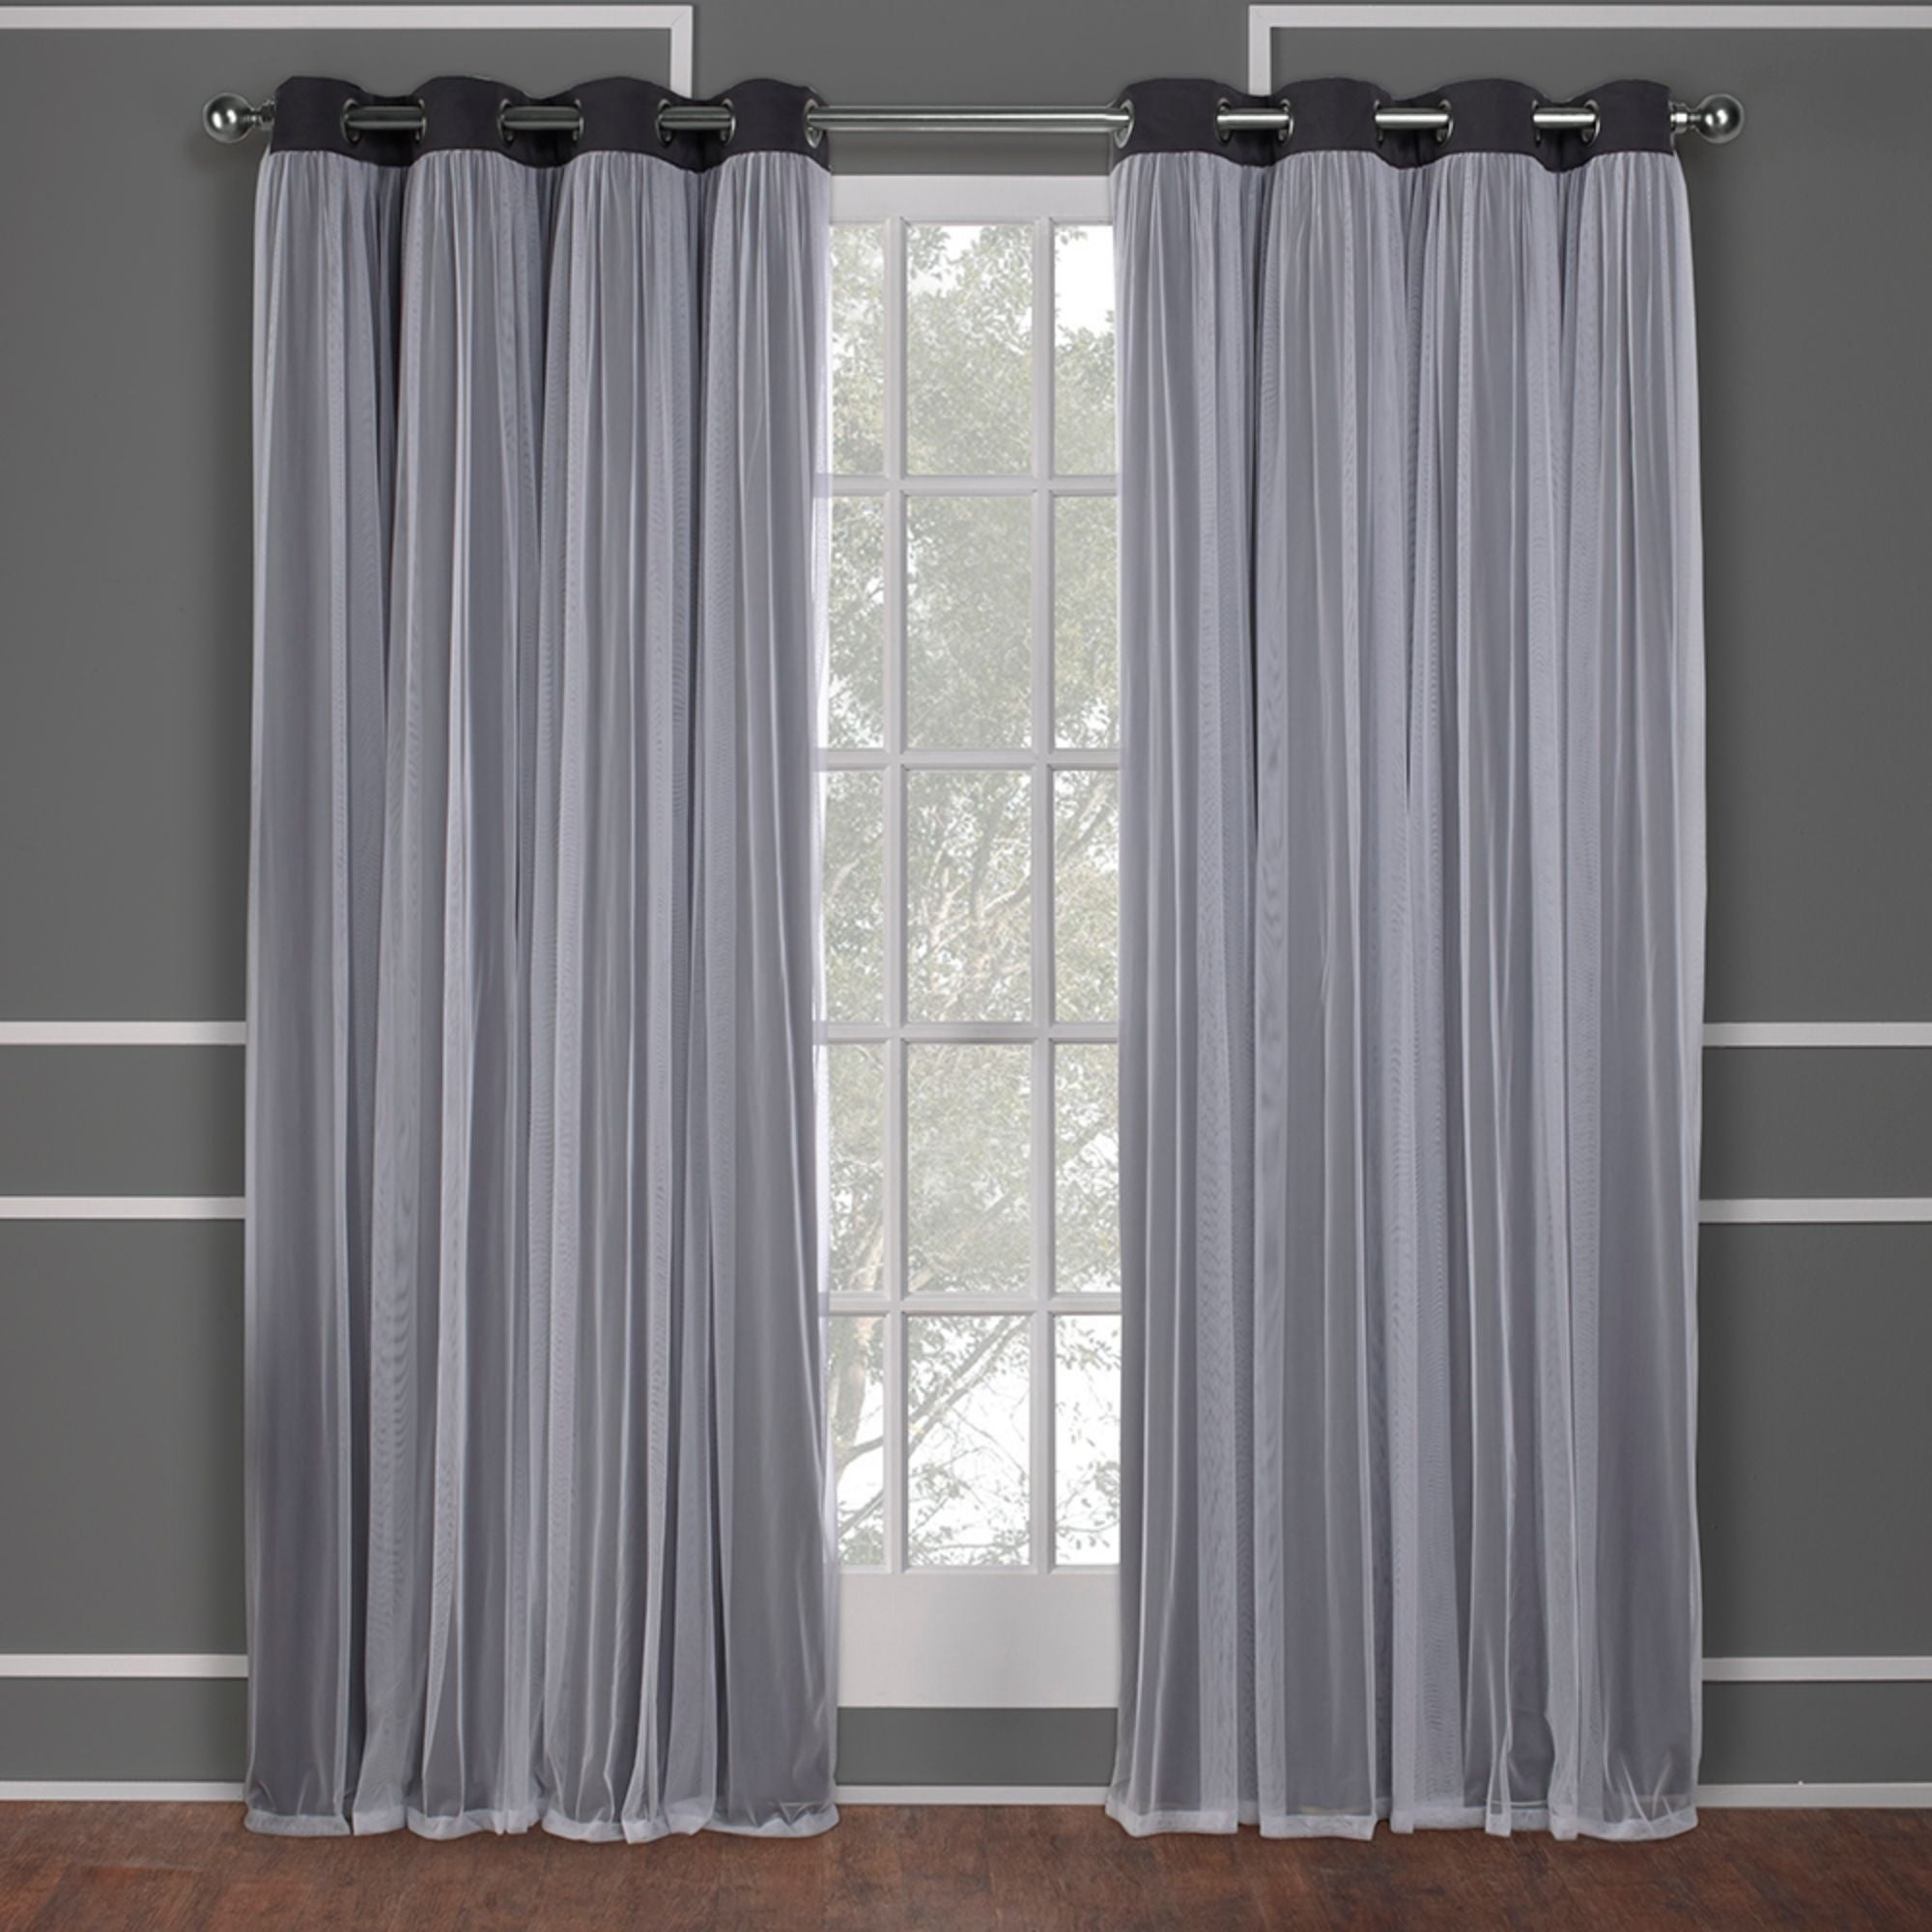 Shop Ati Home Catarina Layered Curtain Panel Pair With With Regard To Catarina Layered Curtain Panel Pairs With Grommet Top (View 5 of 20)